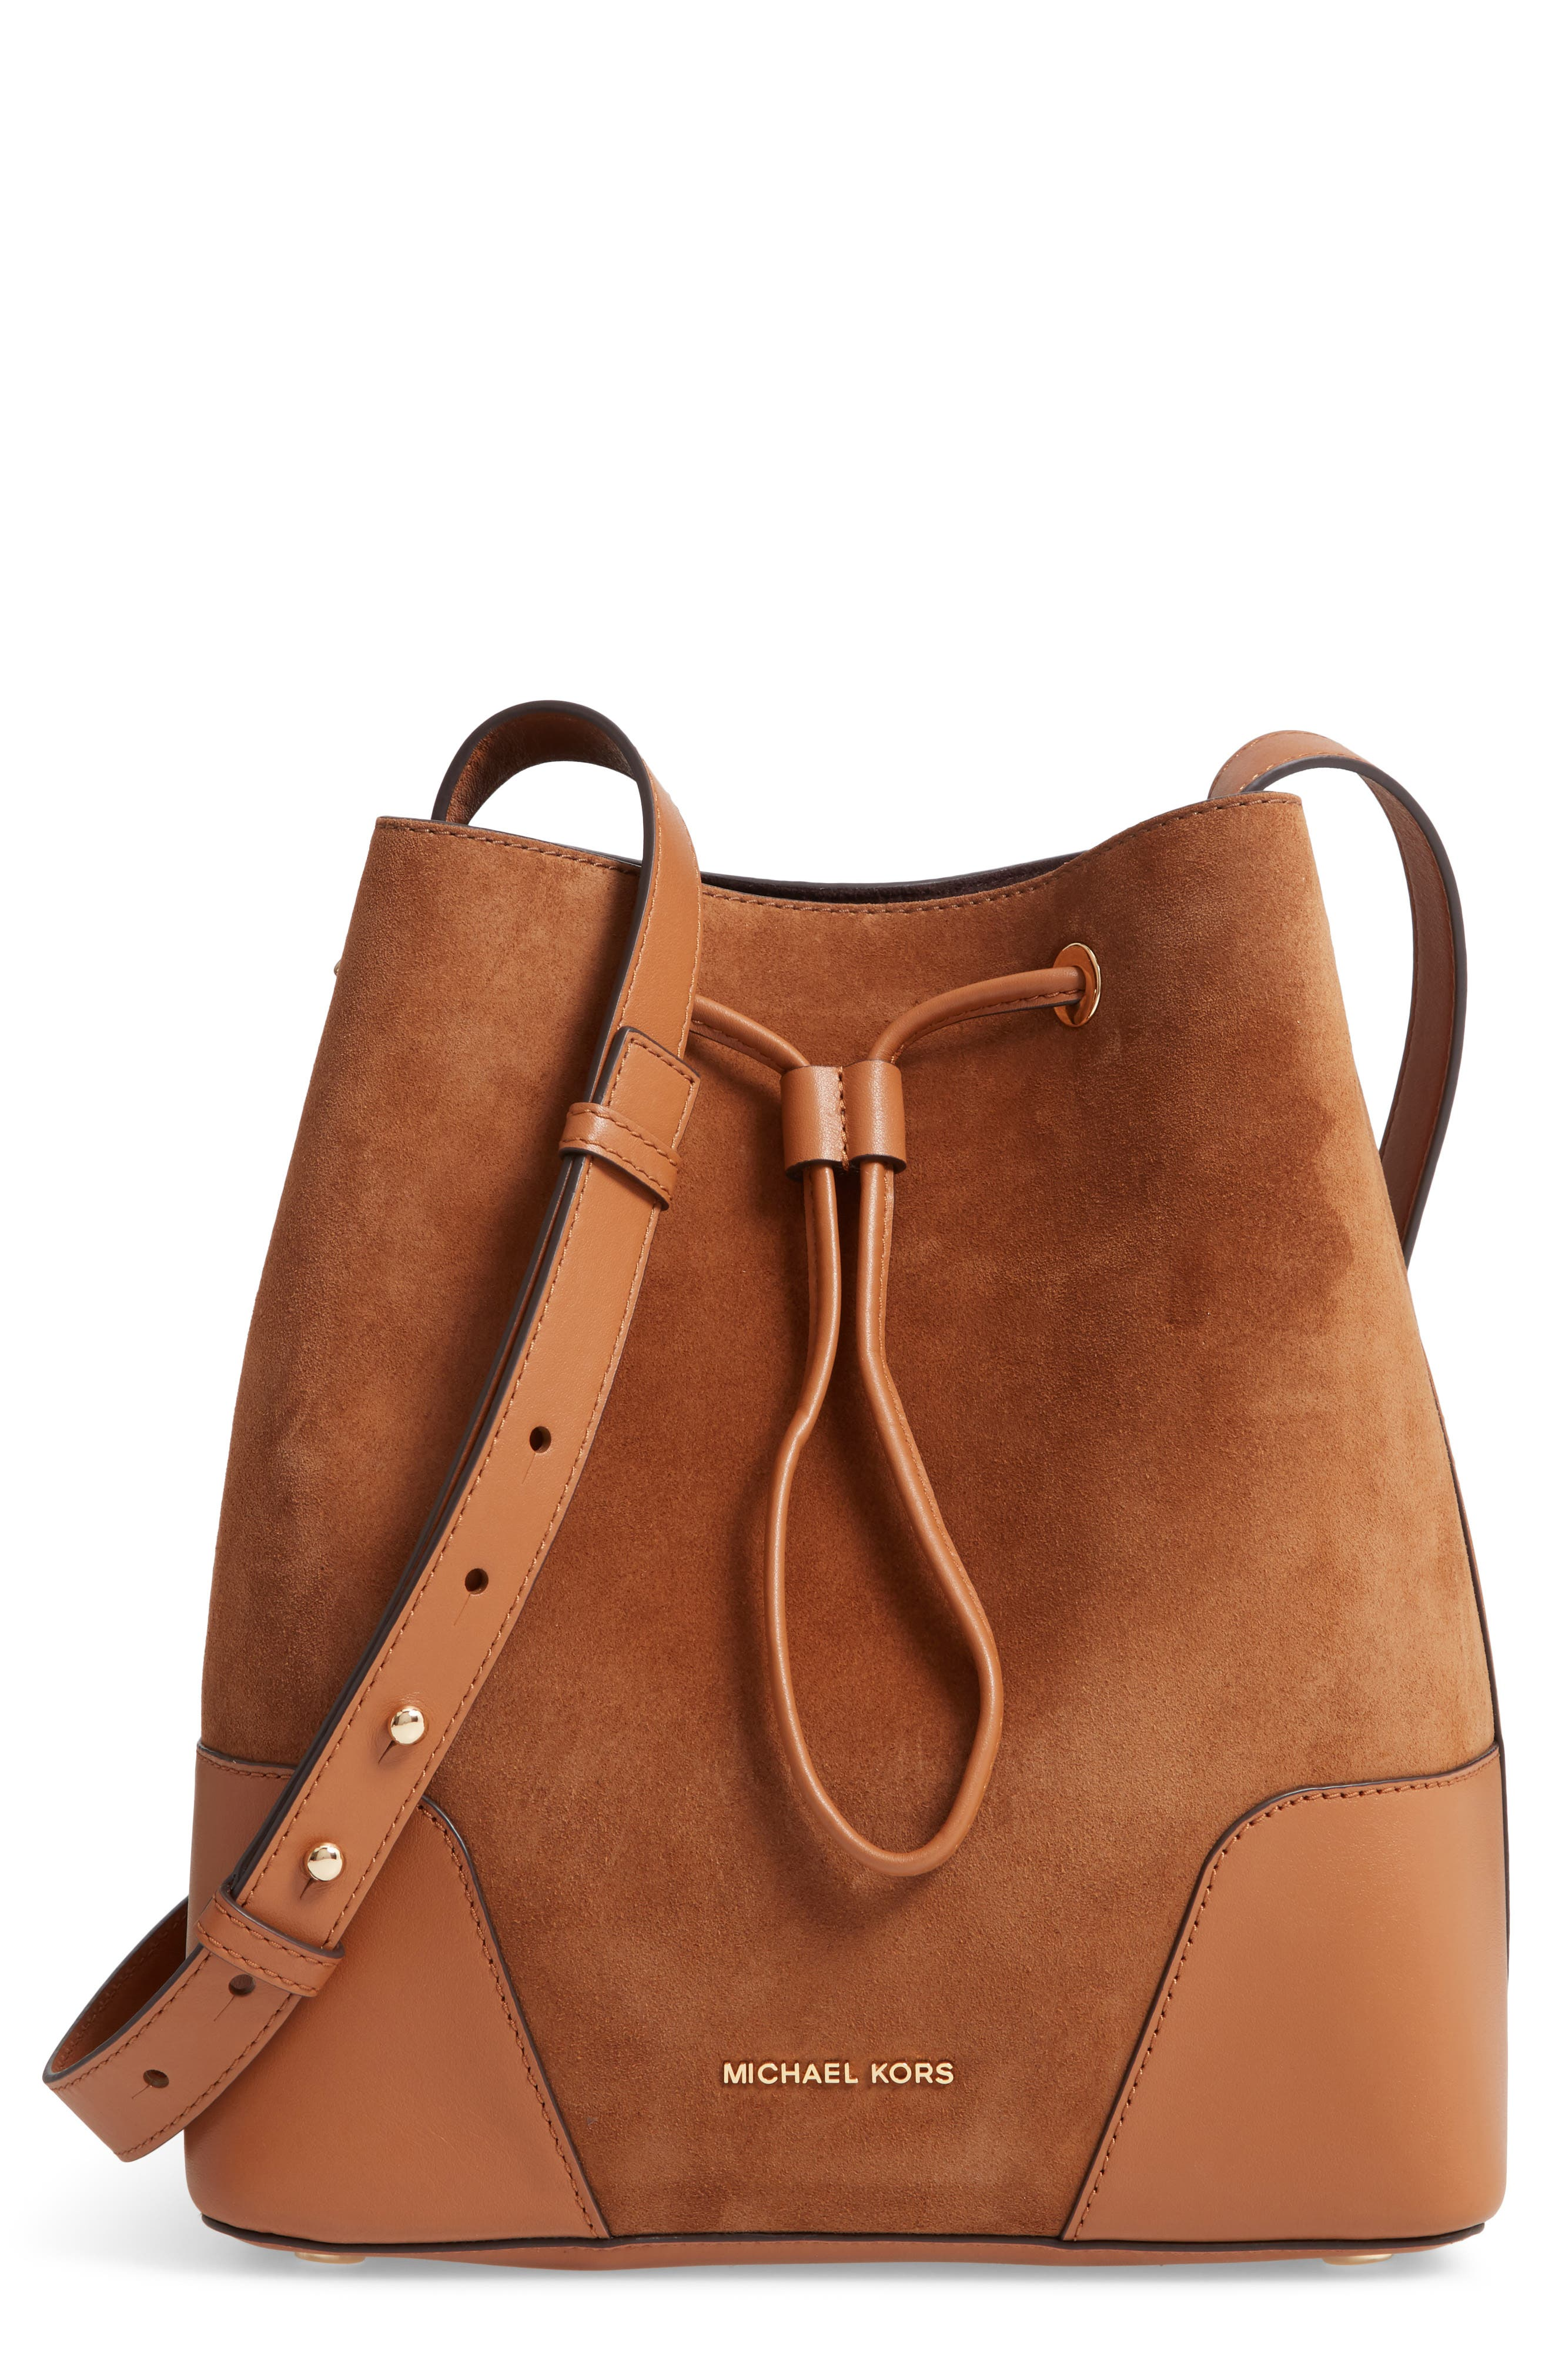 Cary Leather & Suede Bucket Bag,                             Main thumbnail 1, color,